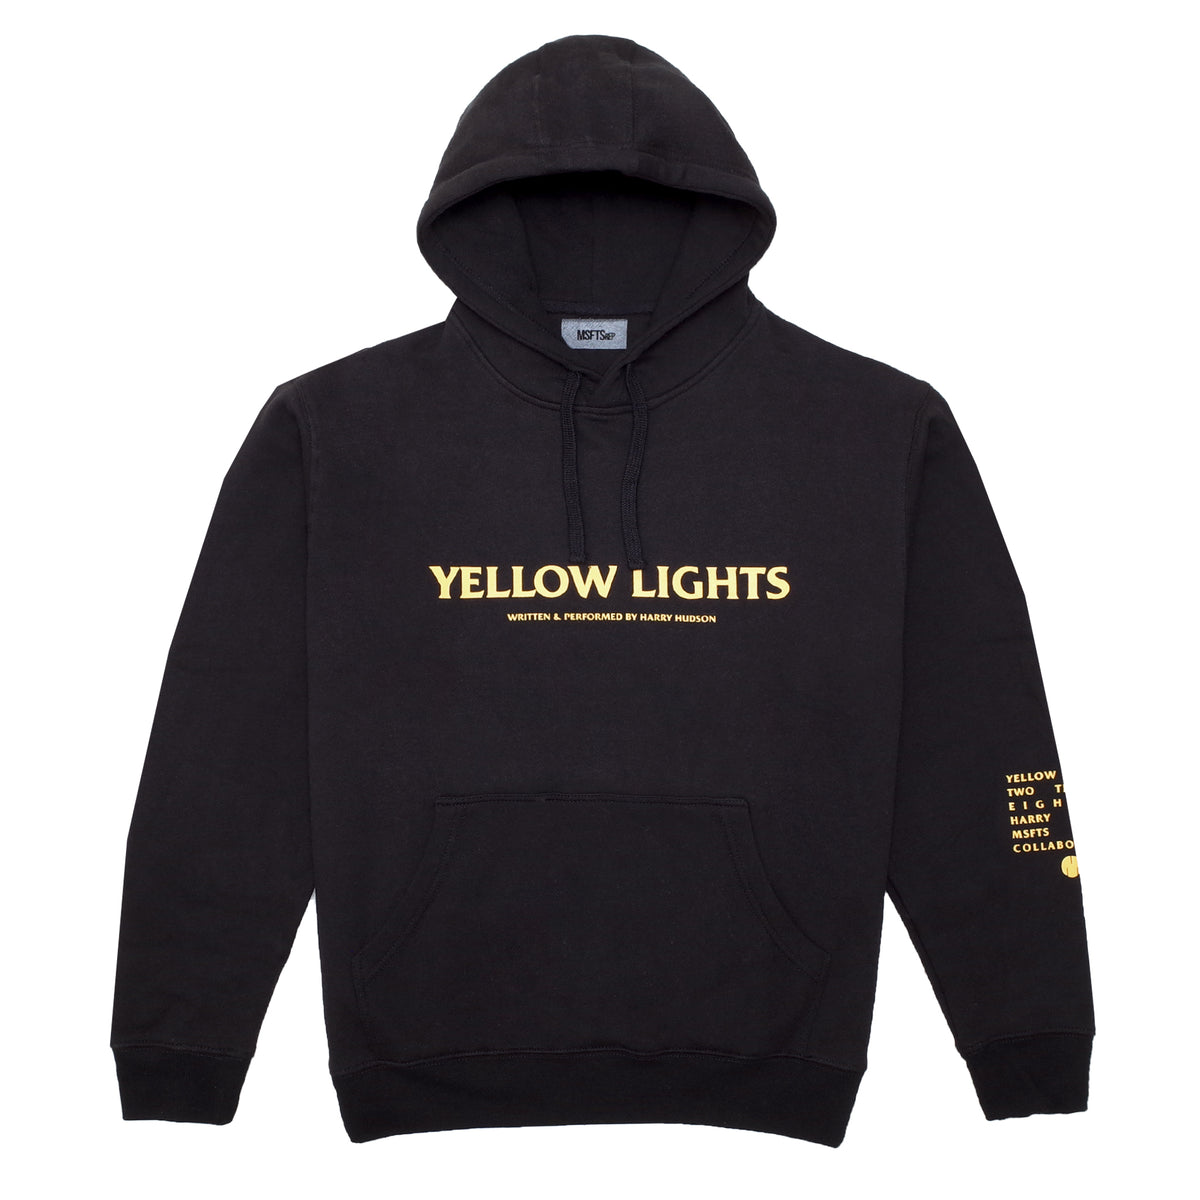 yellow lights hoodie  black   u2013 msftsrep